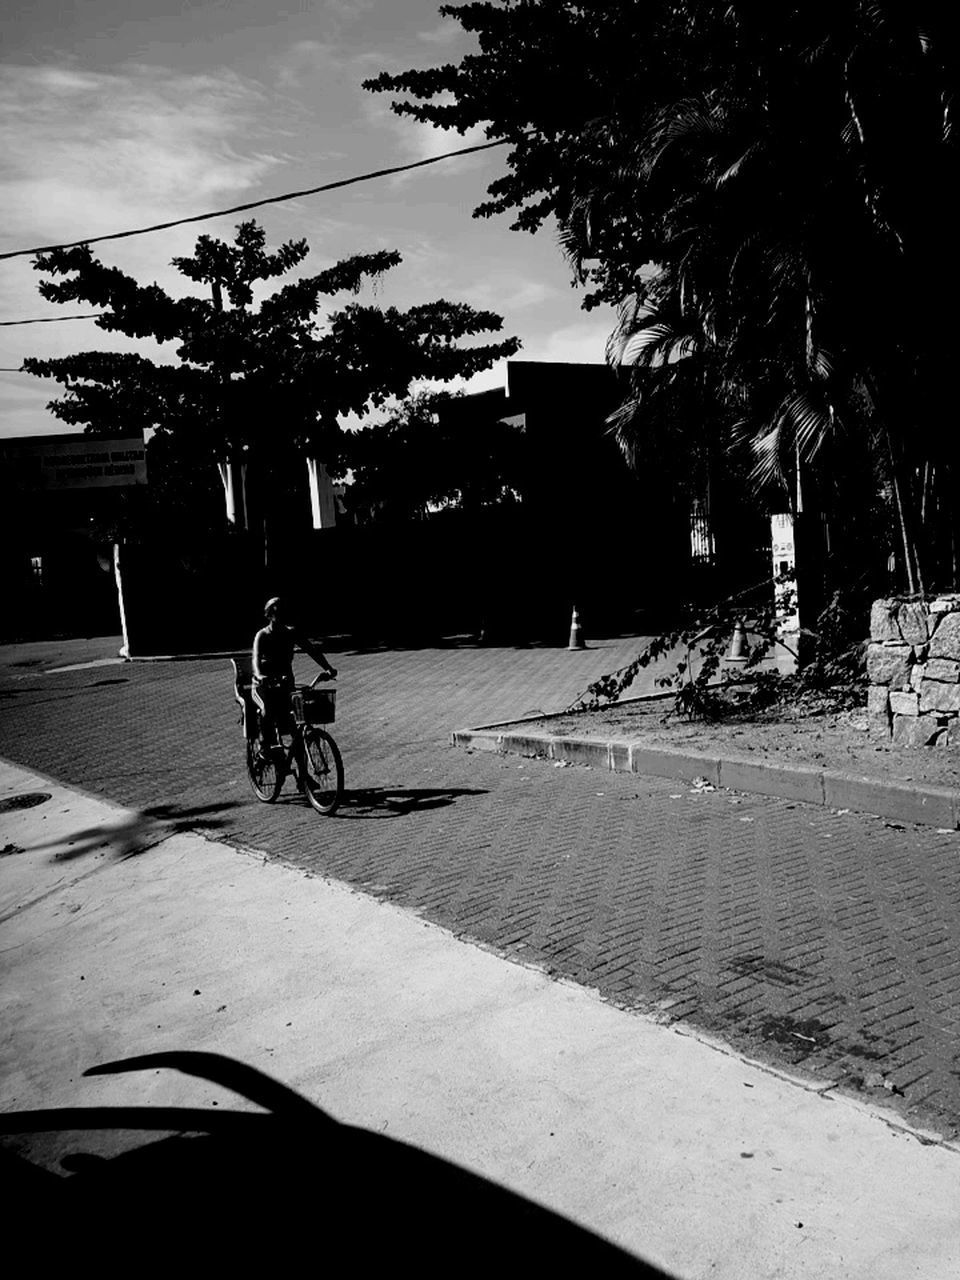 bicycle, tree, transportation, land vehicle, mode of transport, cycling, outdoors, palm tree, day, real people, men, sunlight, built structure, shadow, sky, one person, architecture, building exterior, nature, people